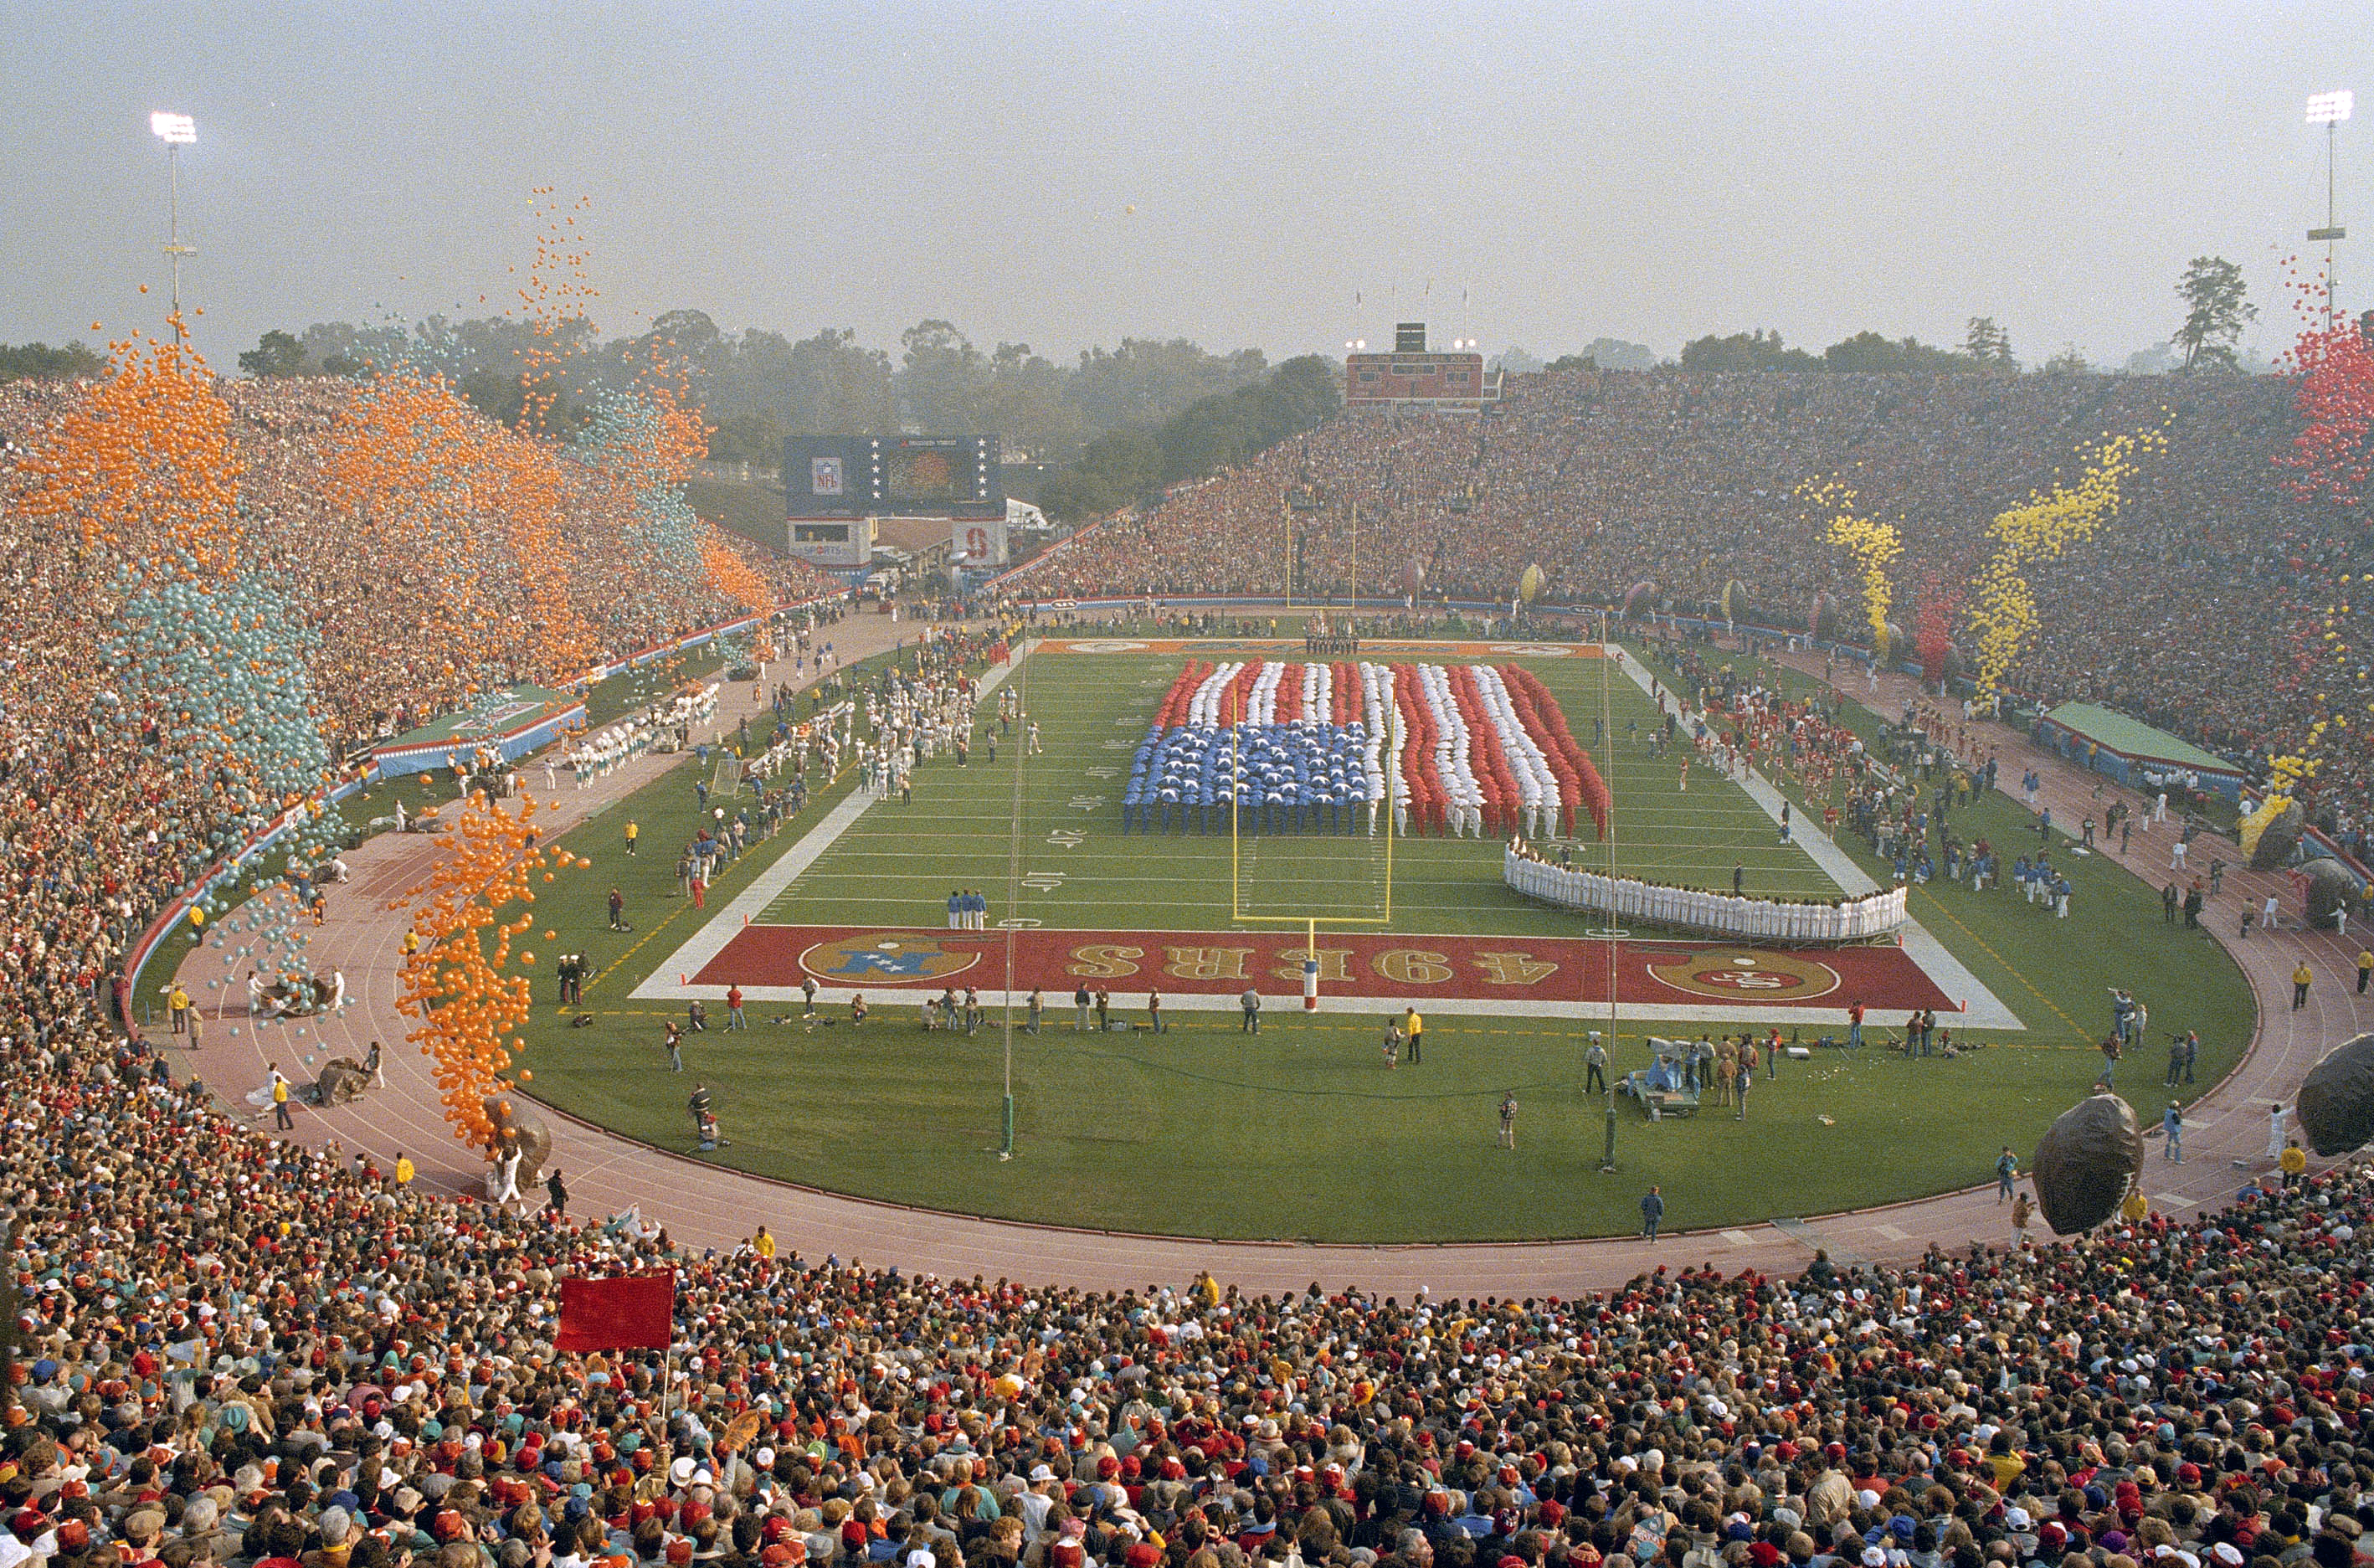 FILE - In this Jan. 20, 1985, file photo, Stanford Stadium is viewed during Super Bowl XIX between the San Francisco 49ers and the Miami Dolphins in Stanford, Calif. The Super Bowl returns to the technology-rich, football-crazed Bay Area for the first tim